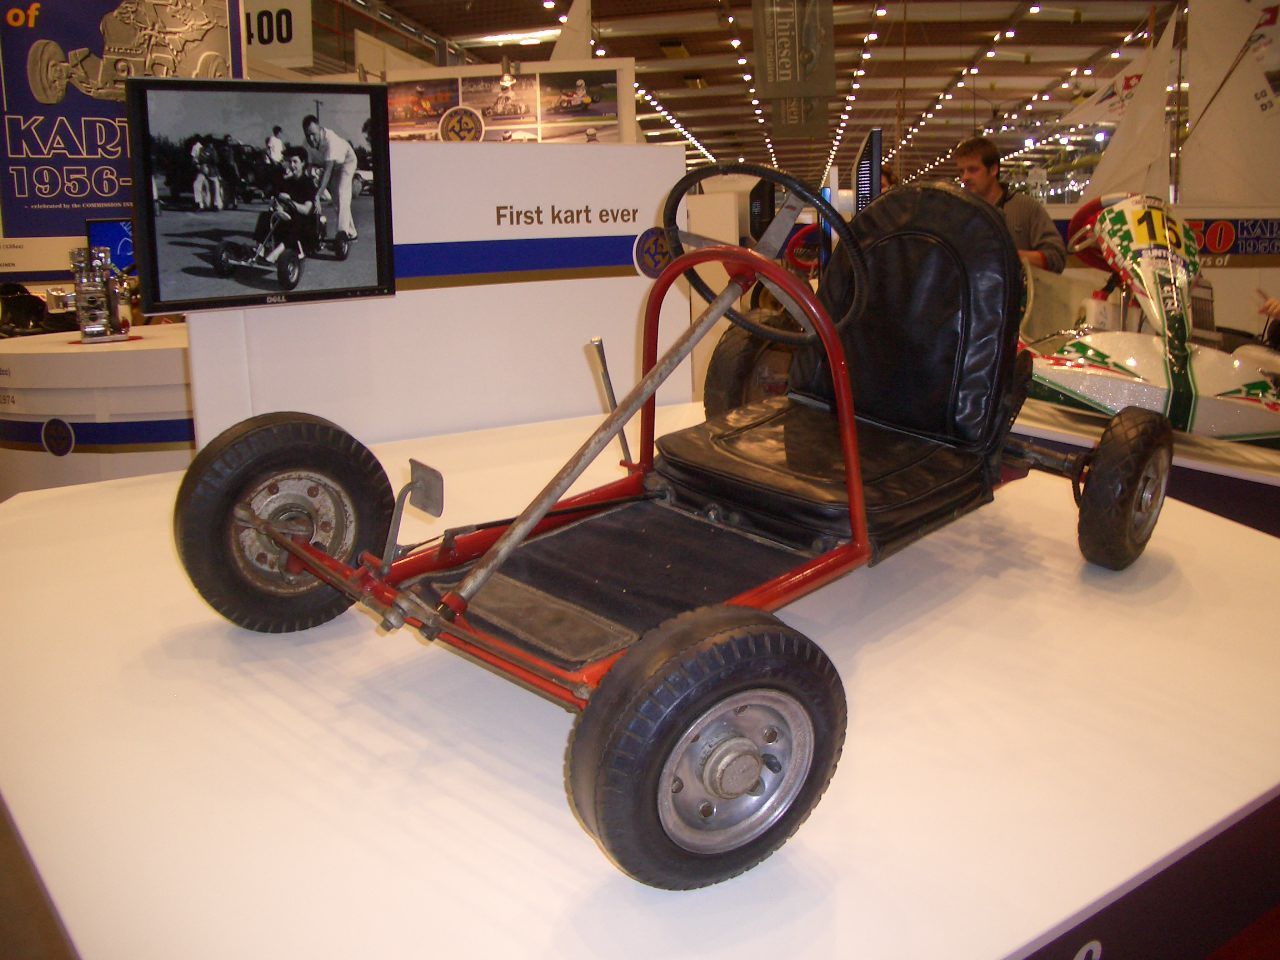 First kart ever; by Art Ingels